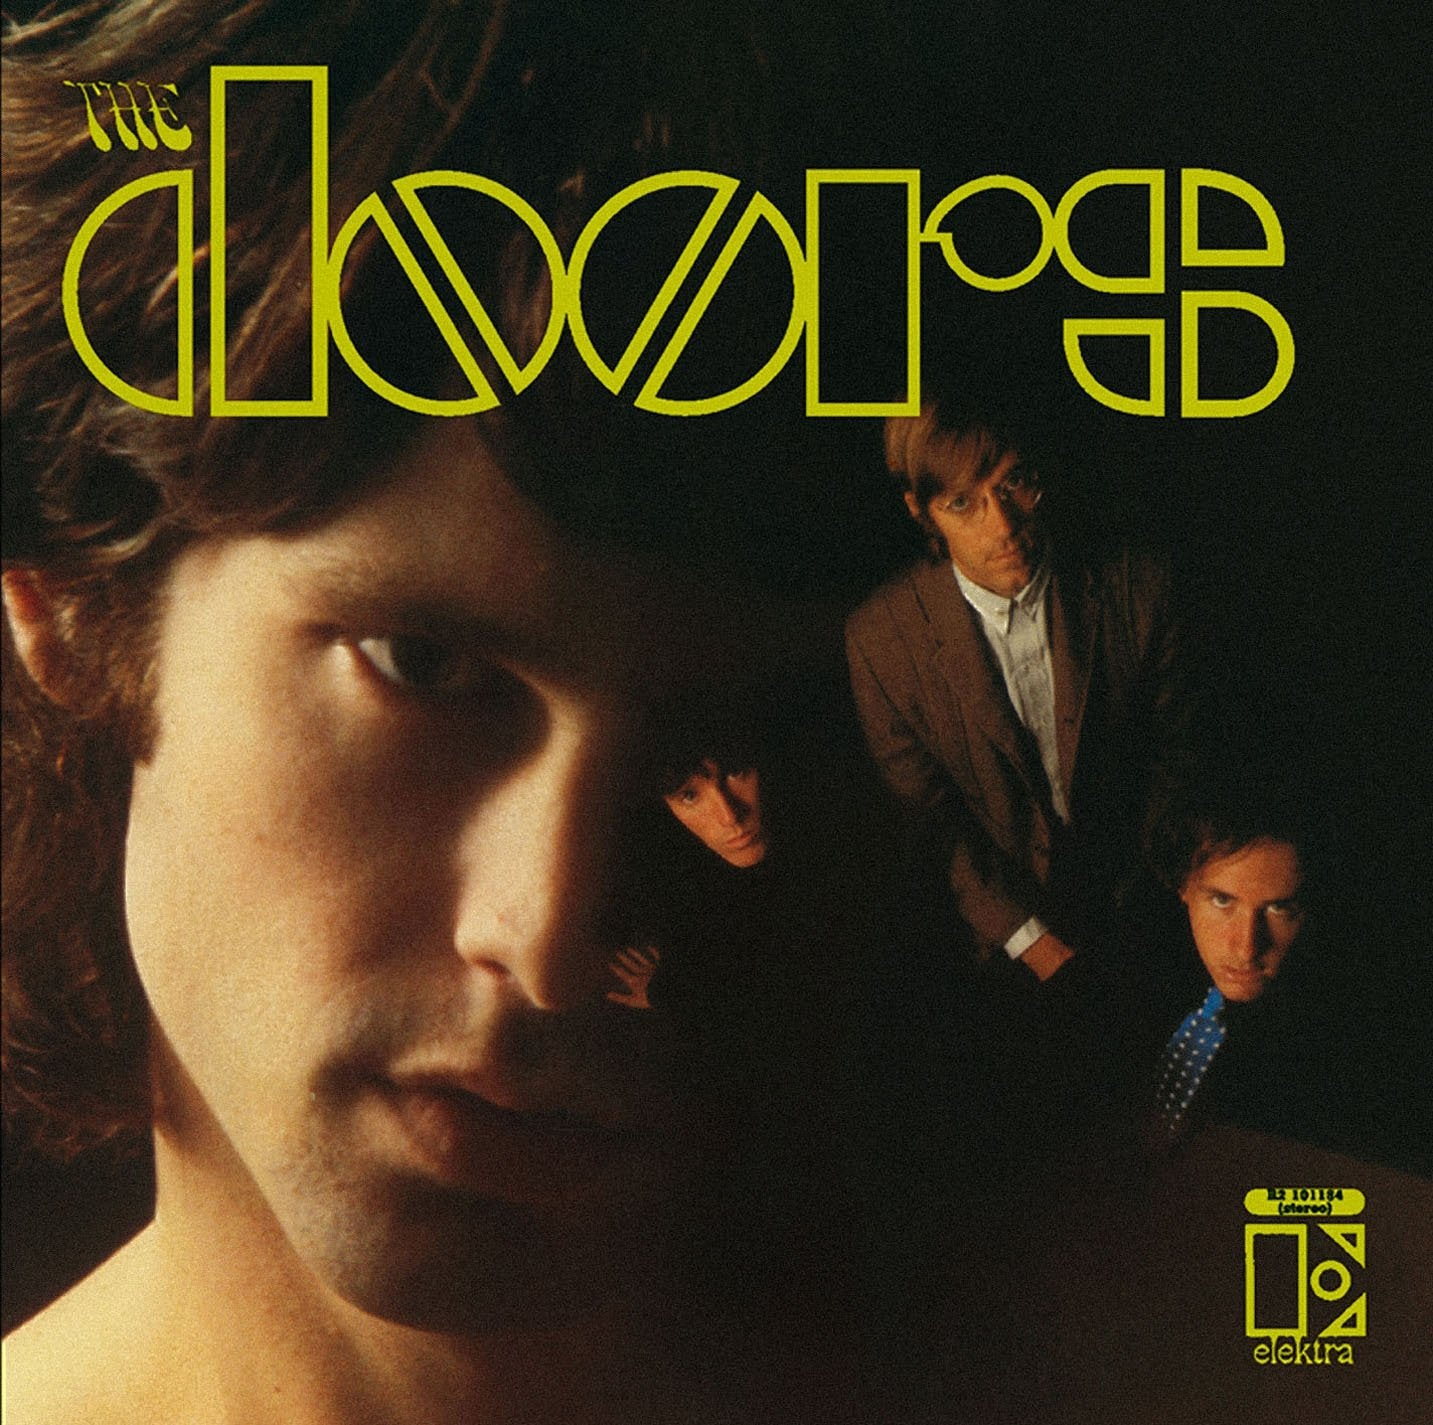 THE DOORS - THE DOORS - VINYL LP - Wah Wah Records